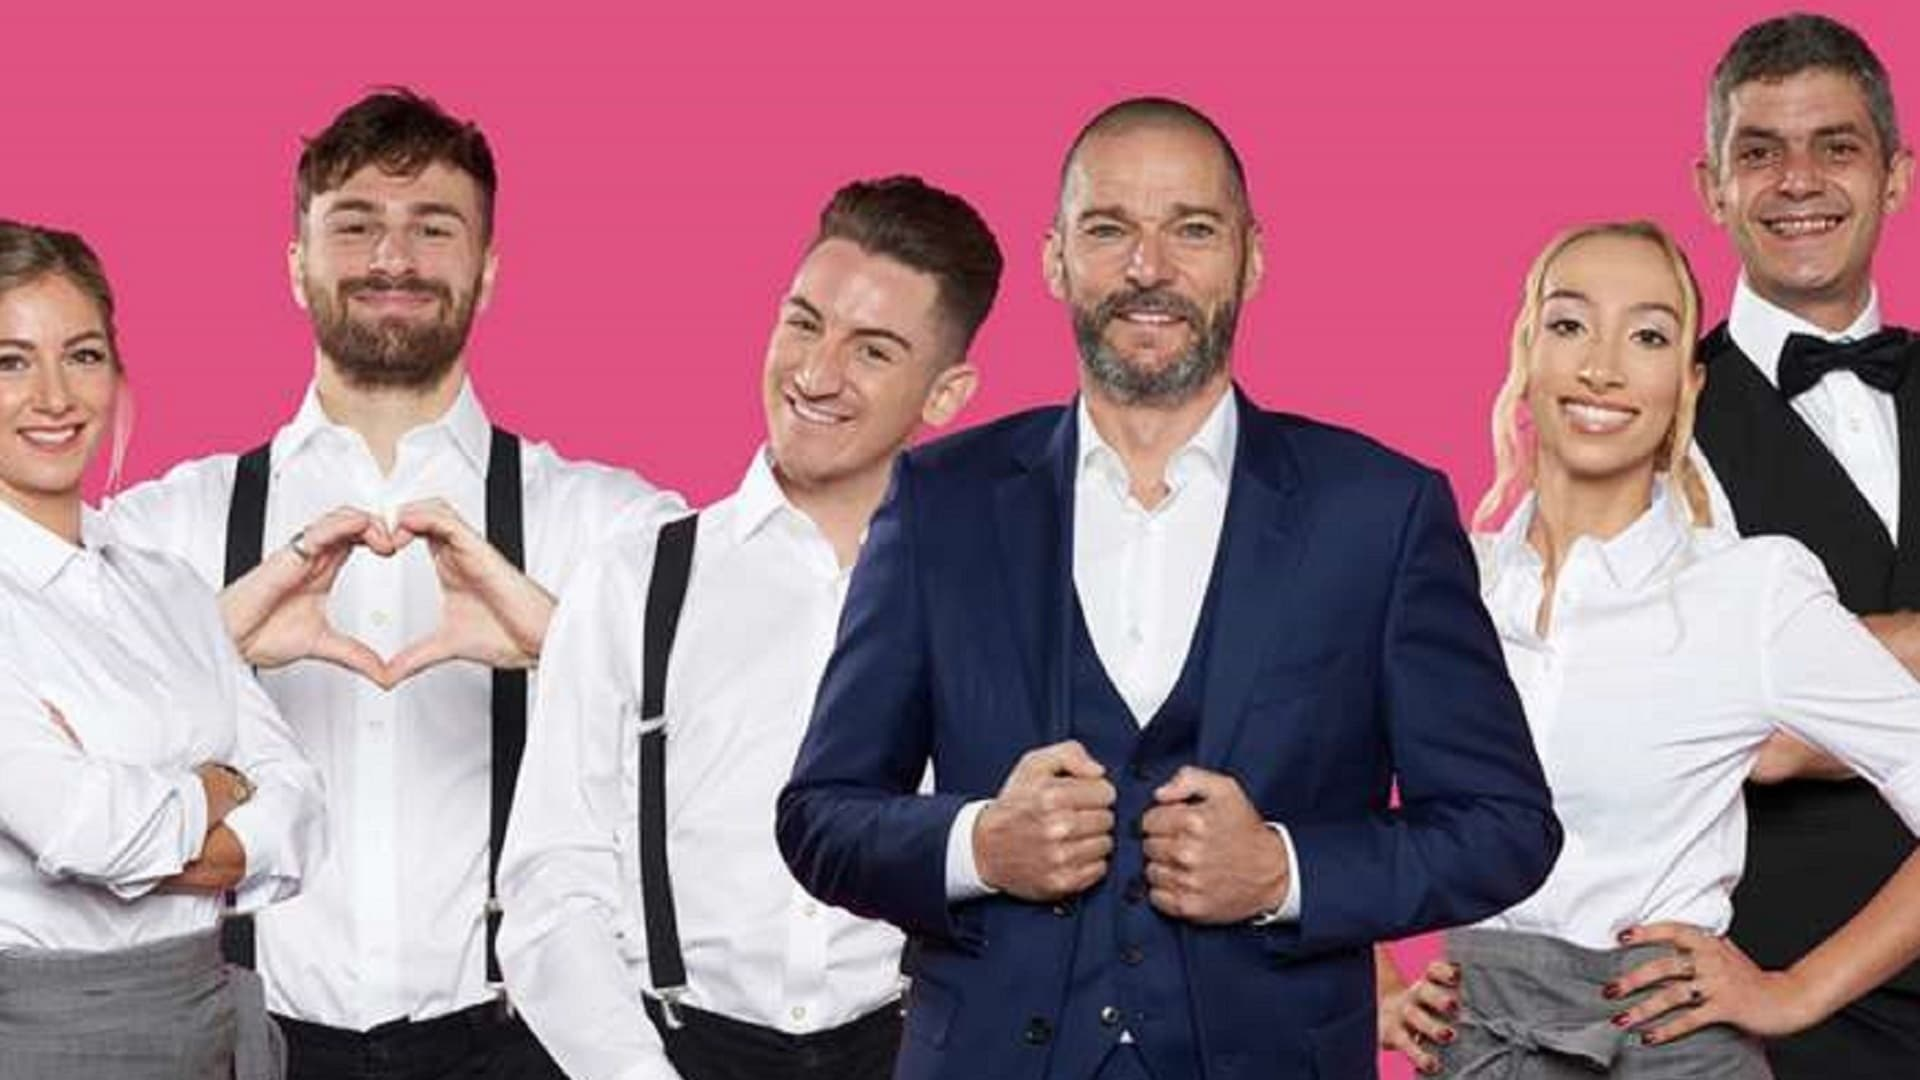 First Dates Christmas Special 2021 Watch Online Teen First Dates Web Series Streaming Online Watch